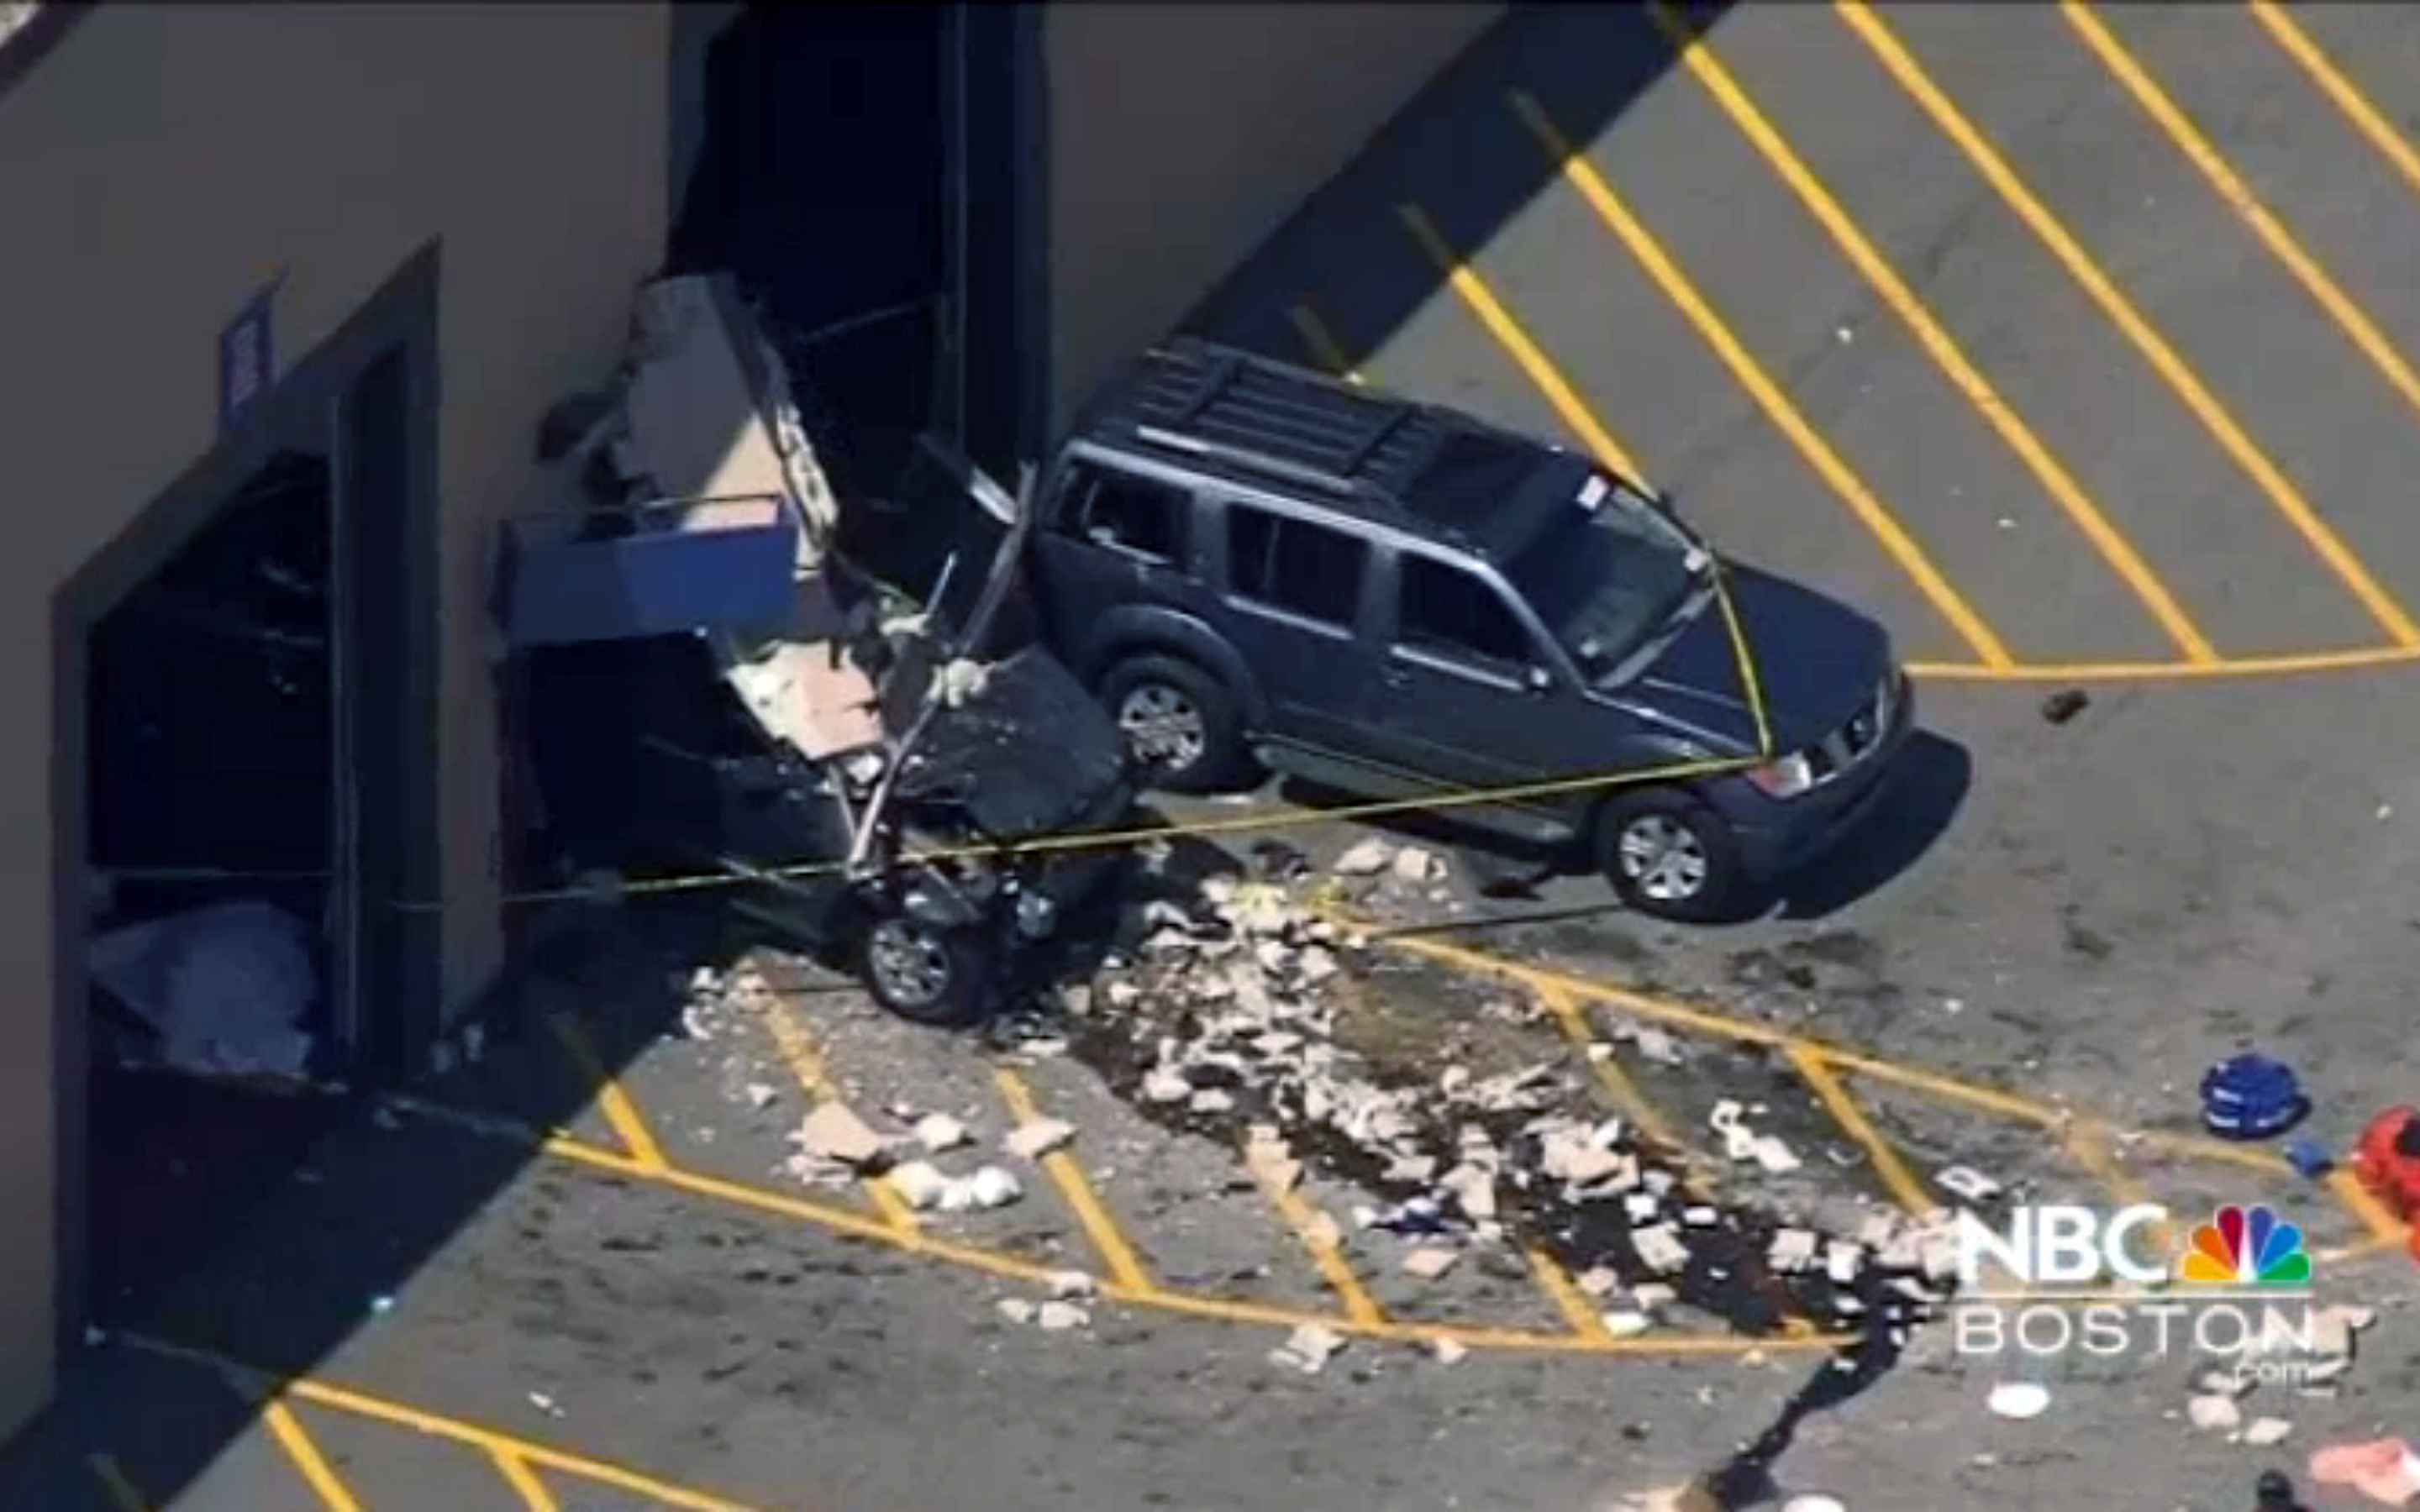 This still image from video provided by NBC Boston shows wreckage after a vehicle suddenly accelerated at an auto auction and struck several people before it crashed through a wall of the building on May 3, 2017, in Billerica, Mass.